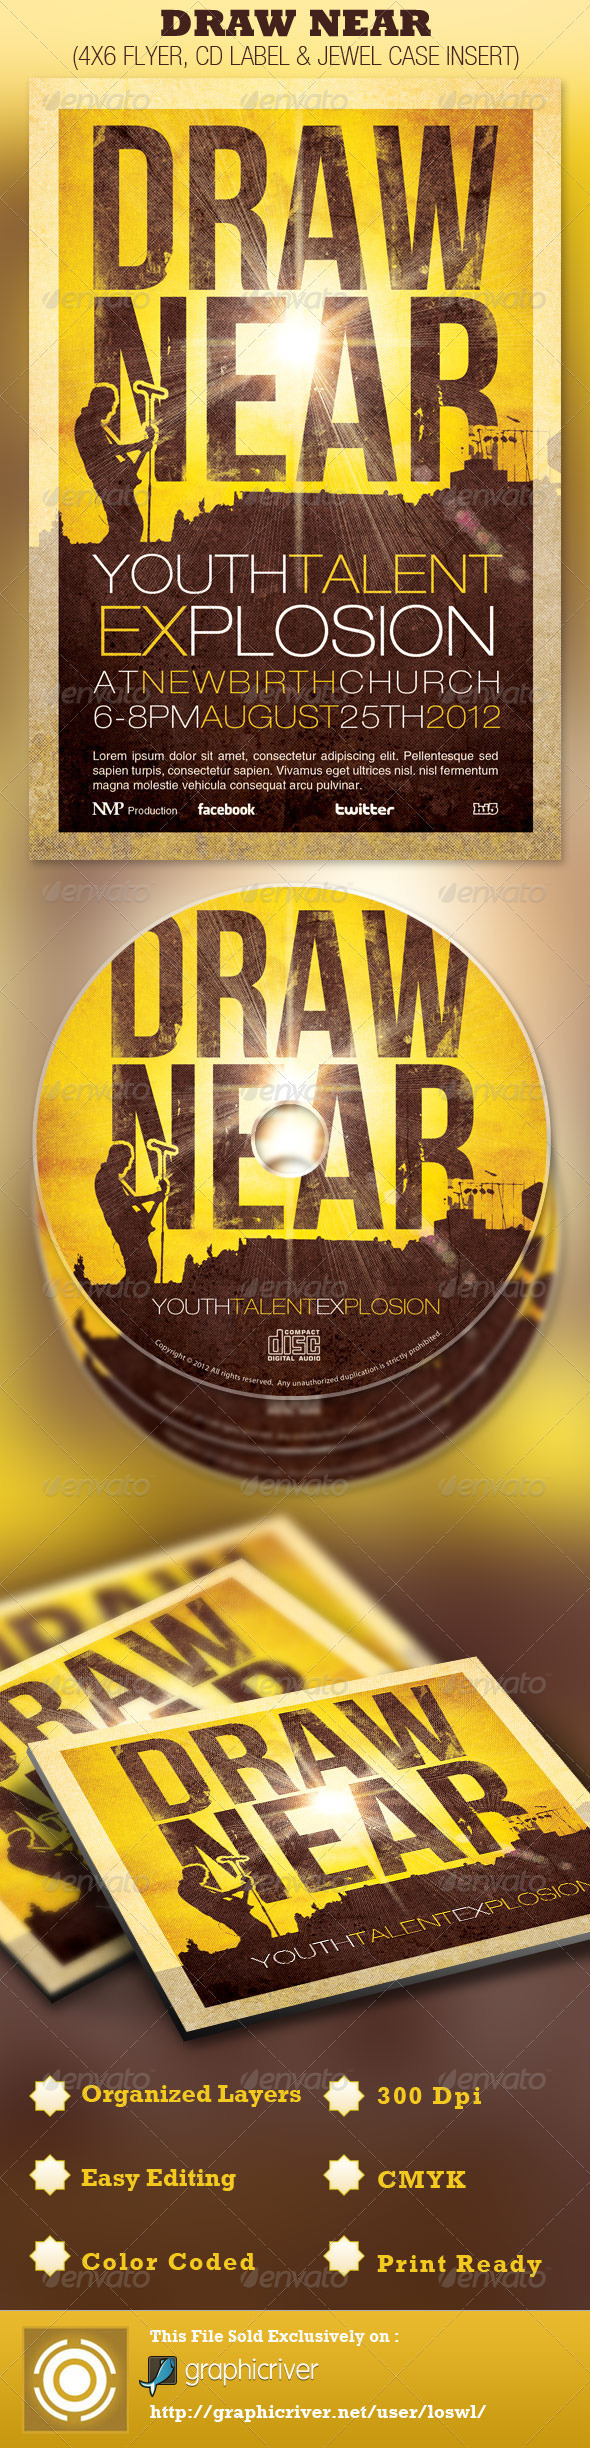 Draw Near Church Event Flyer and CD Template - Church Flyers